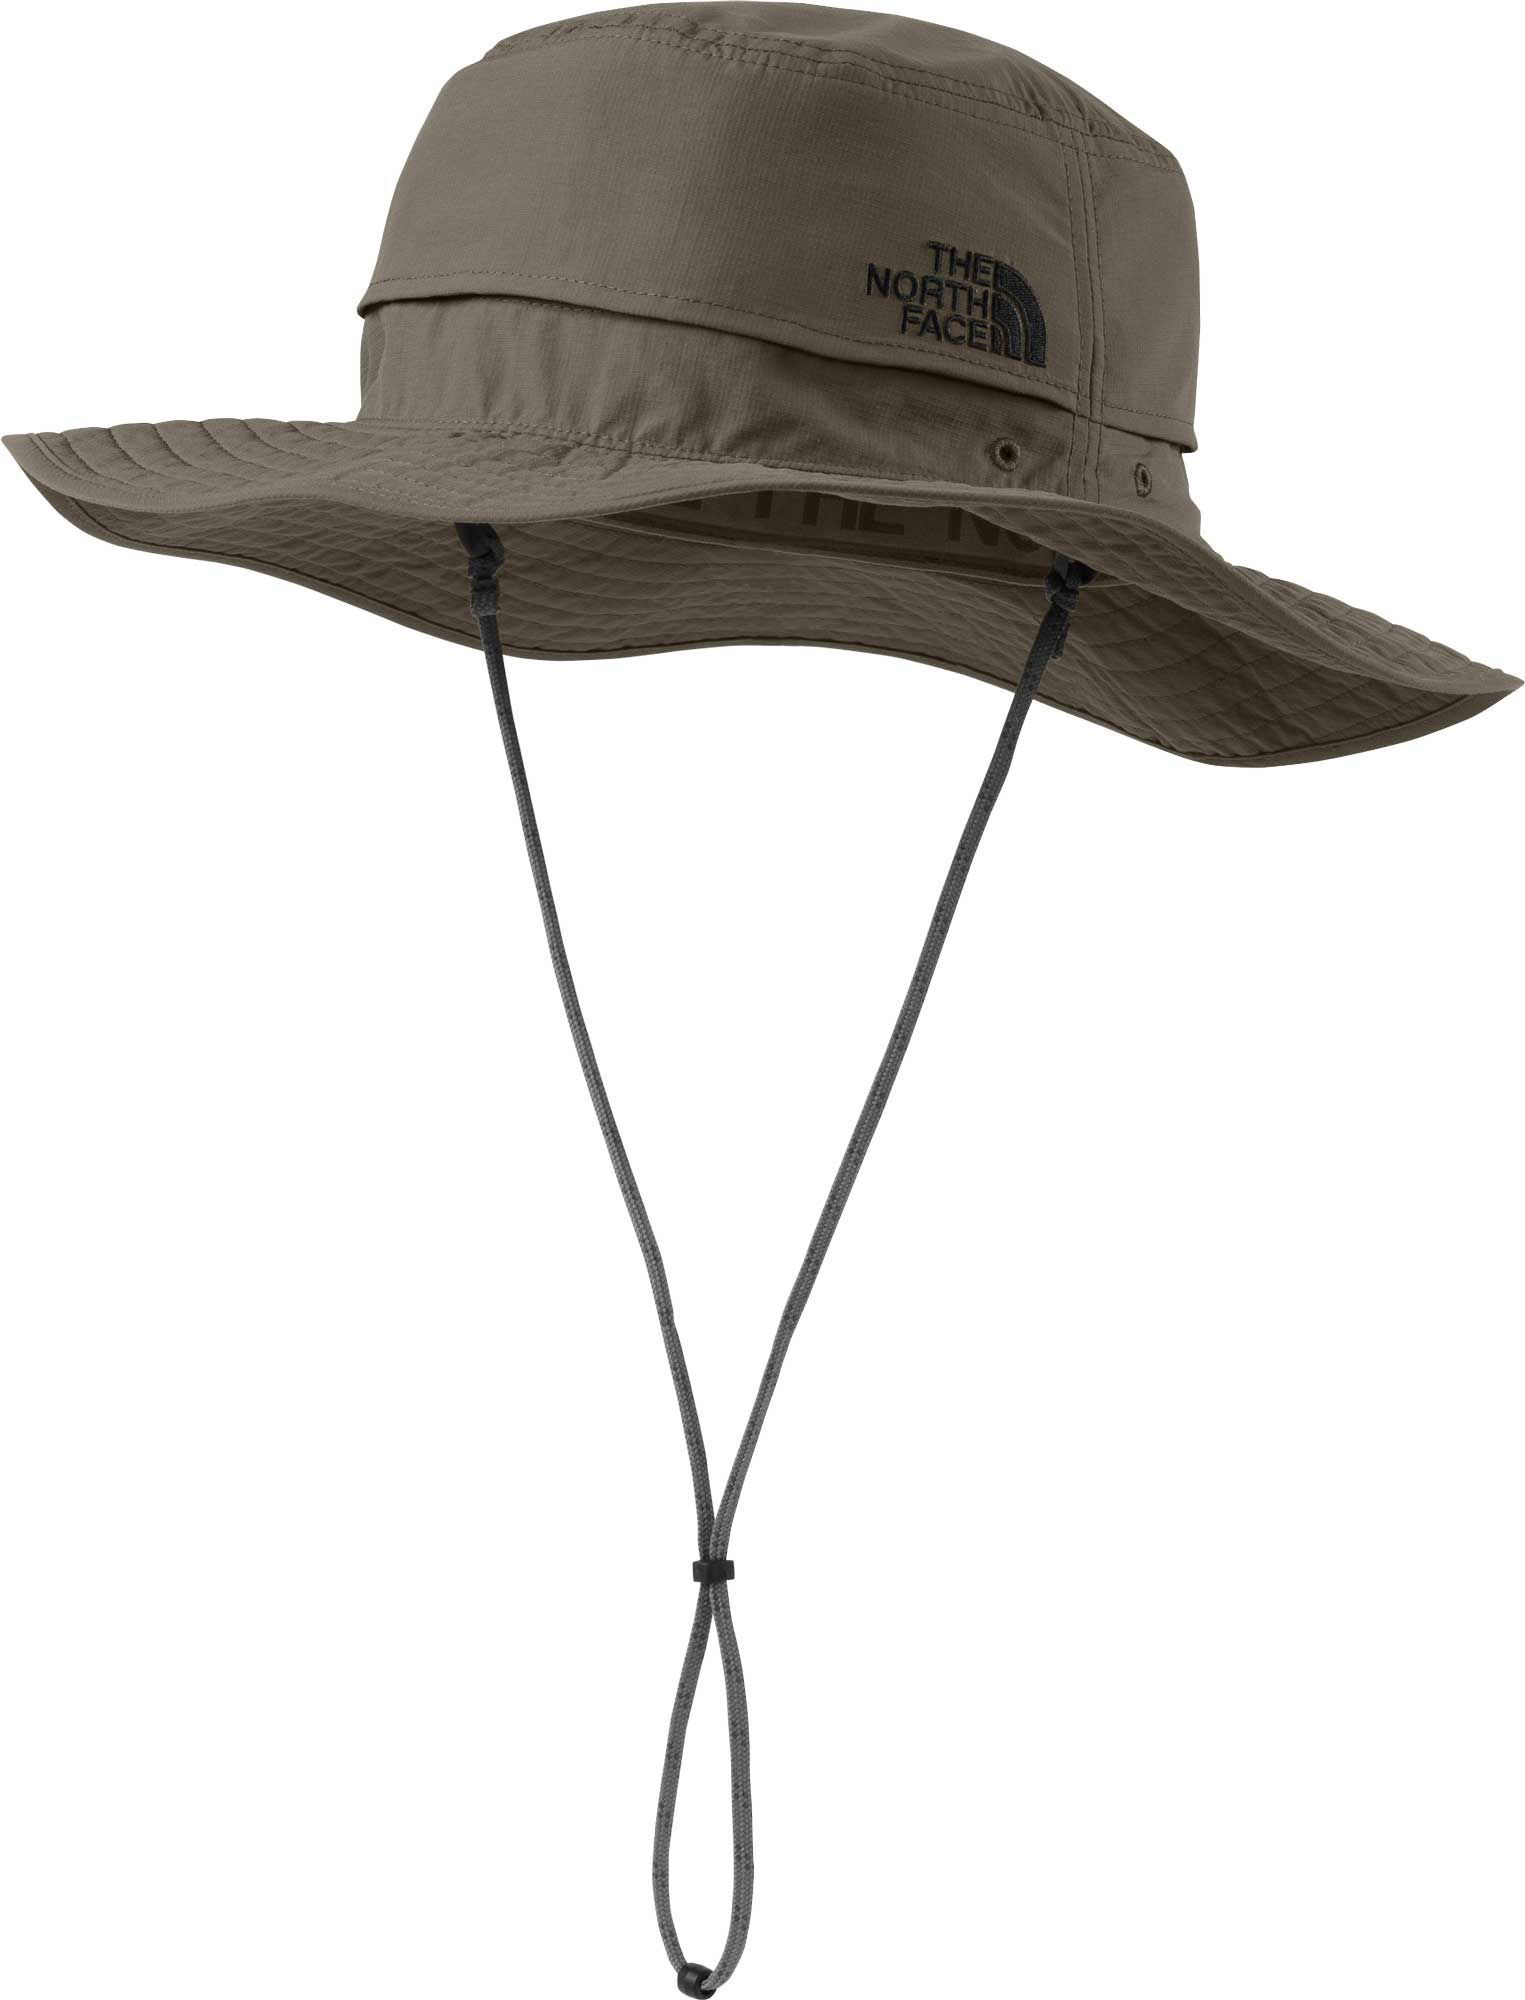 50dc2238 The North Face Men's Horizon Breeze Brimmer Hat, Size: S/M, Asphalt ...